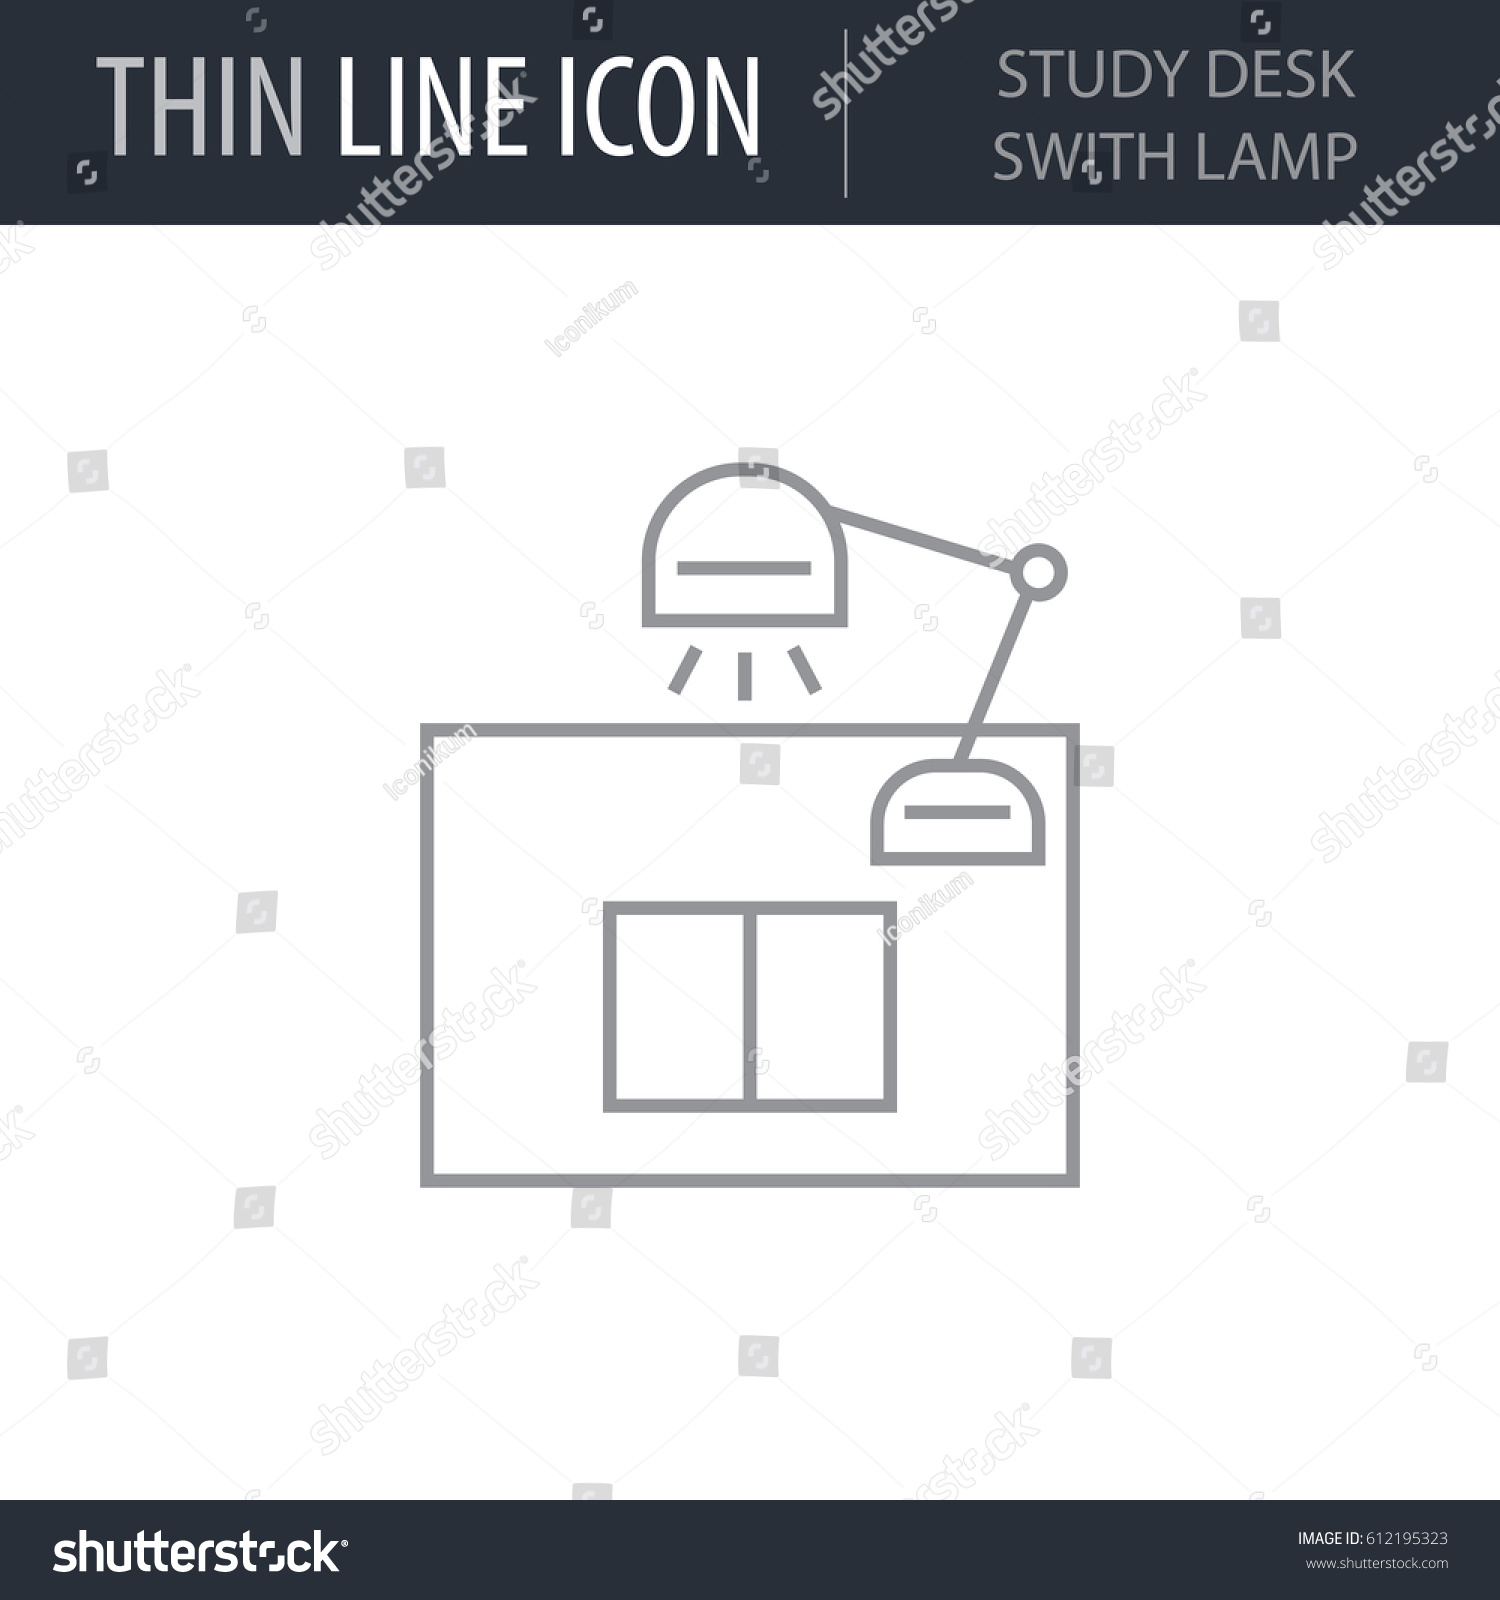 Symbol study desk swith lamp thin stock vector 612195323 symbol of study desk swith lamp thin line icon of college stroke pictogram graphic biocorpaavc Images